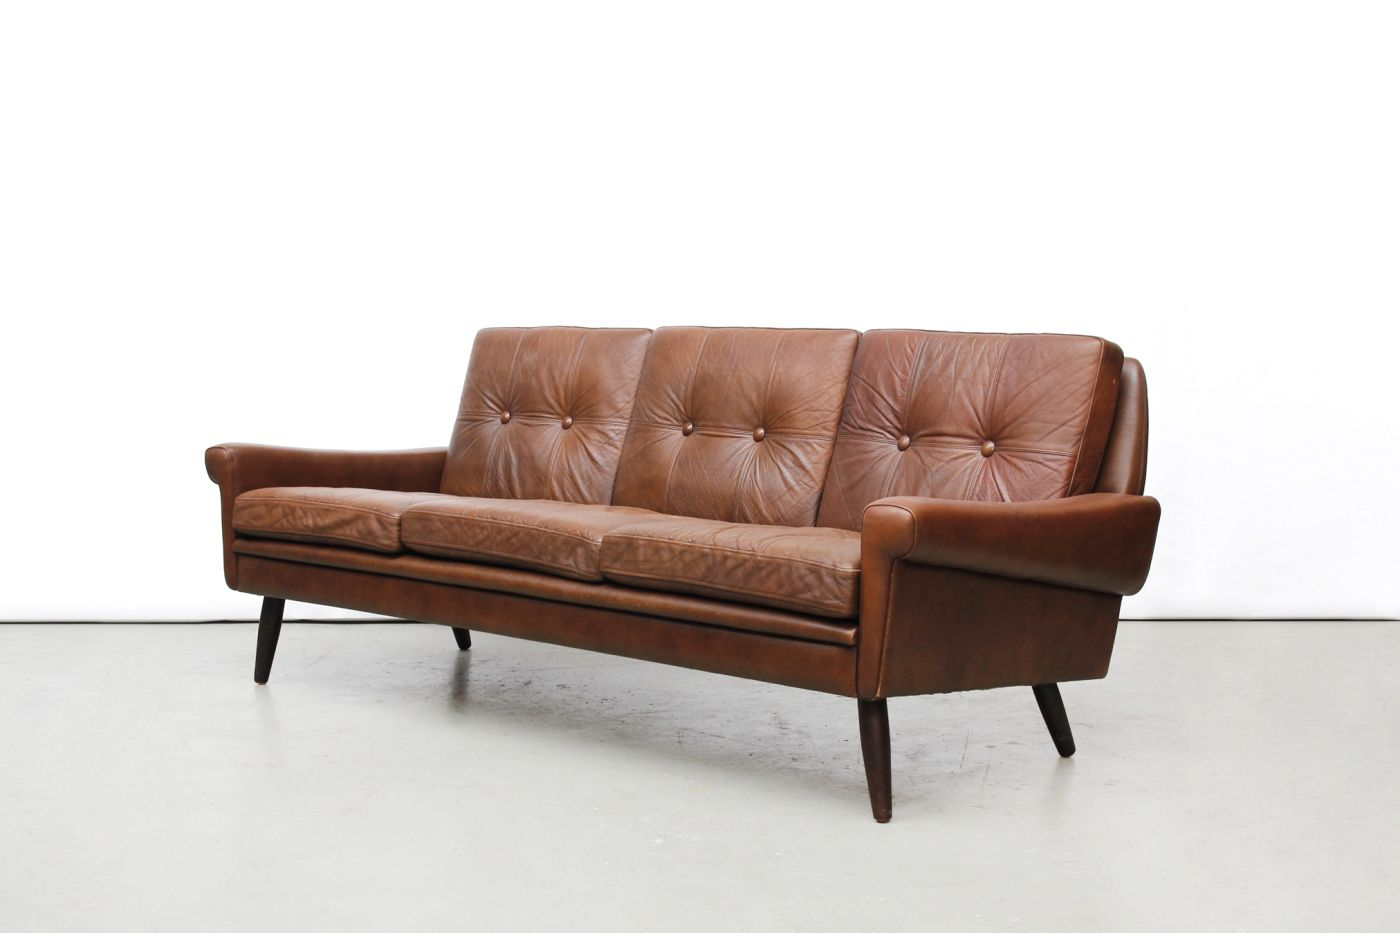 3 Sofas Amsterdam Sofa Small Living Room Philippines Vintage Skippers Møbler Leather Designer Van Ons